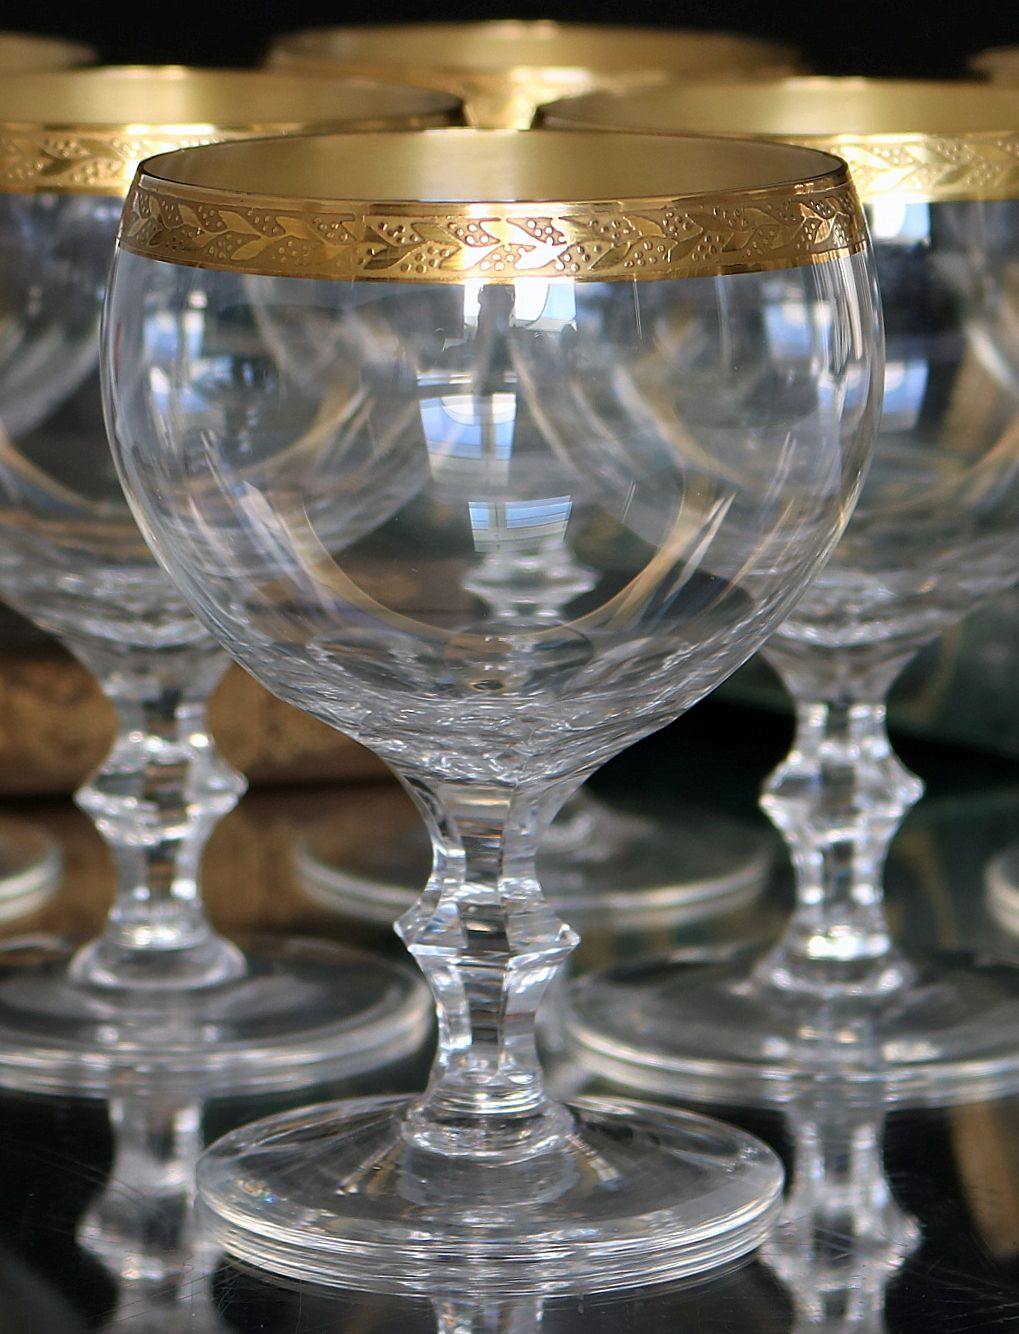 2x Crystal Wine Glasses With Textured 24k Gold Rim Wine Goblets Crystal Wine Glasses Vintage Crystal Glasses Crystal Glassware